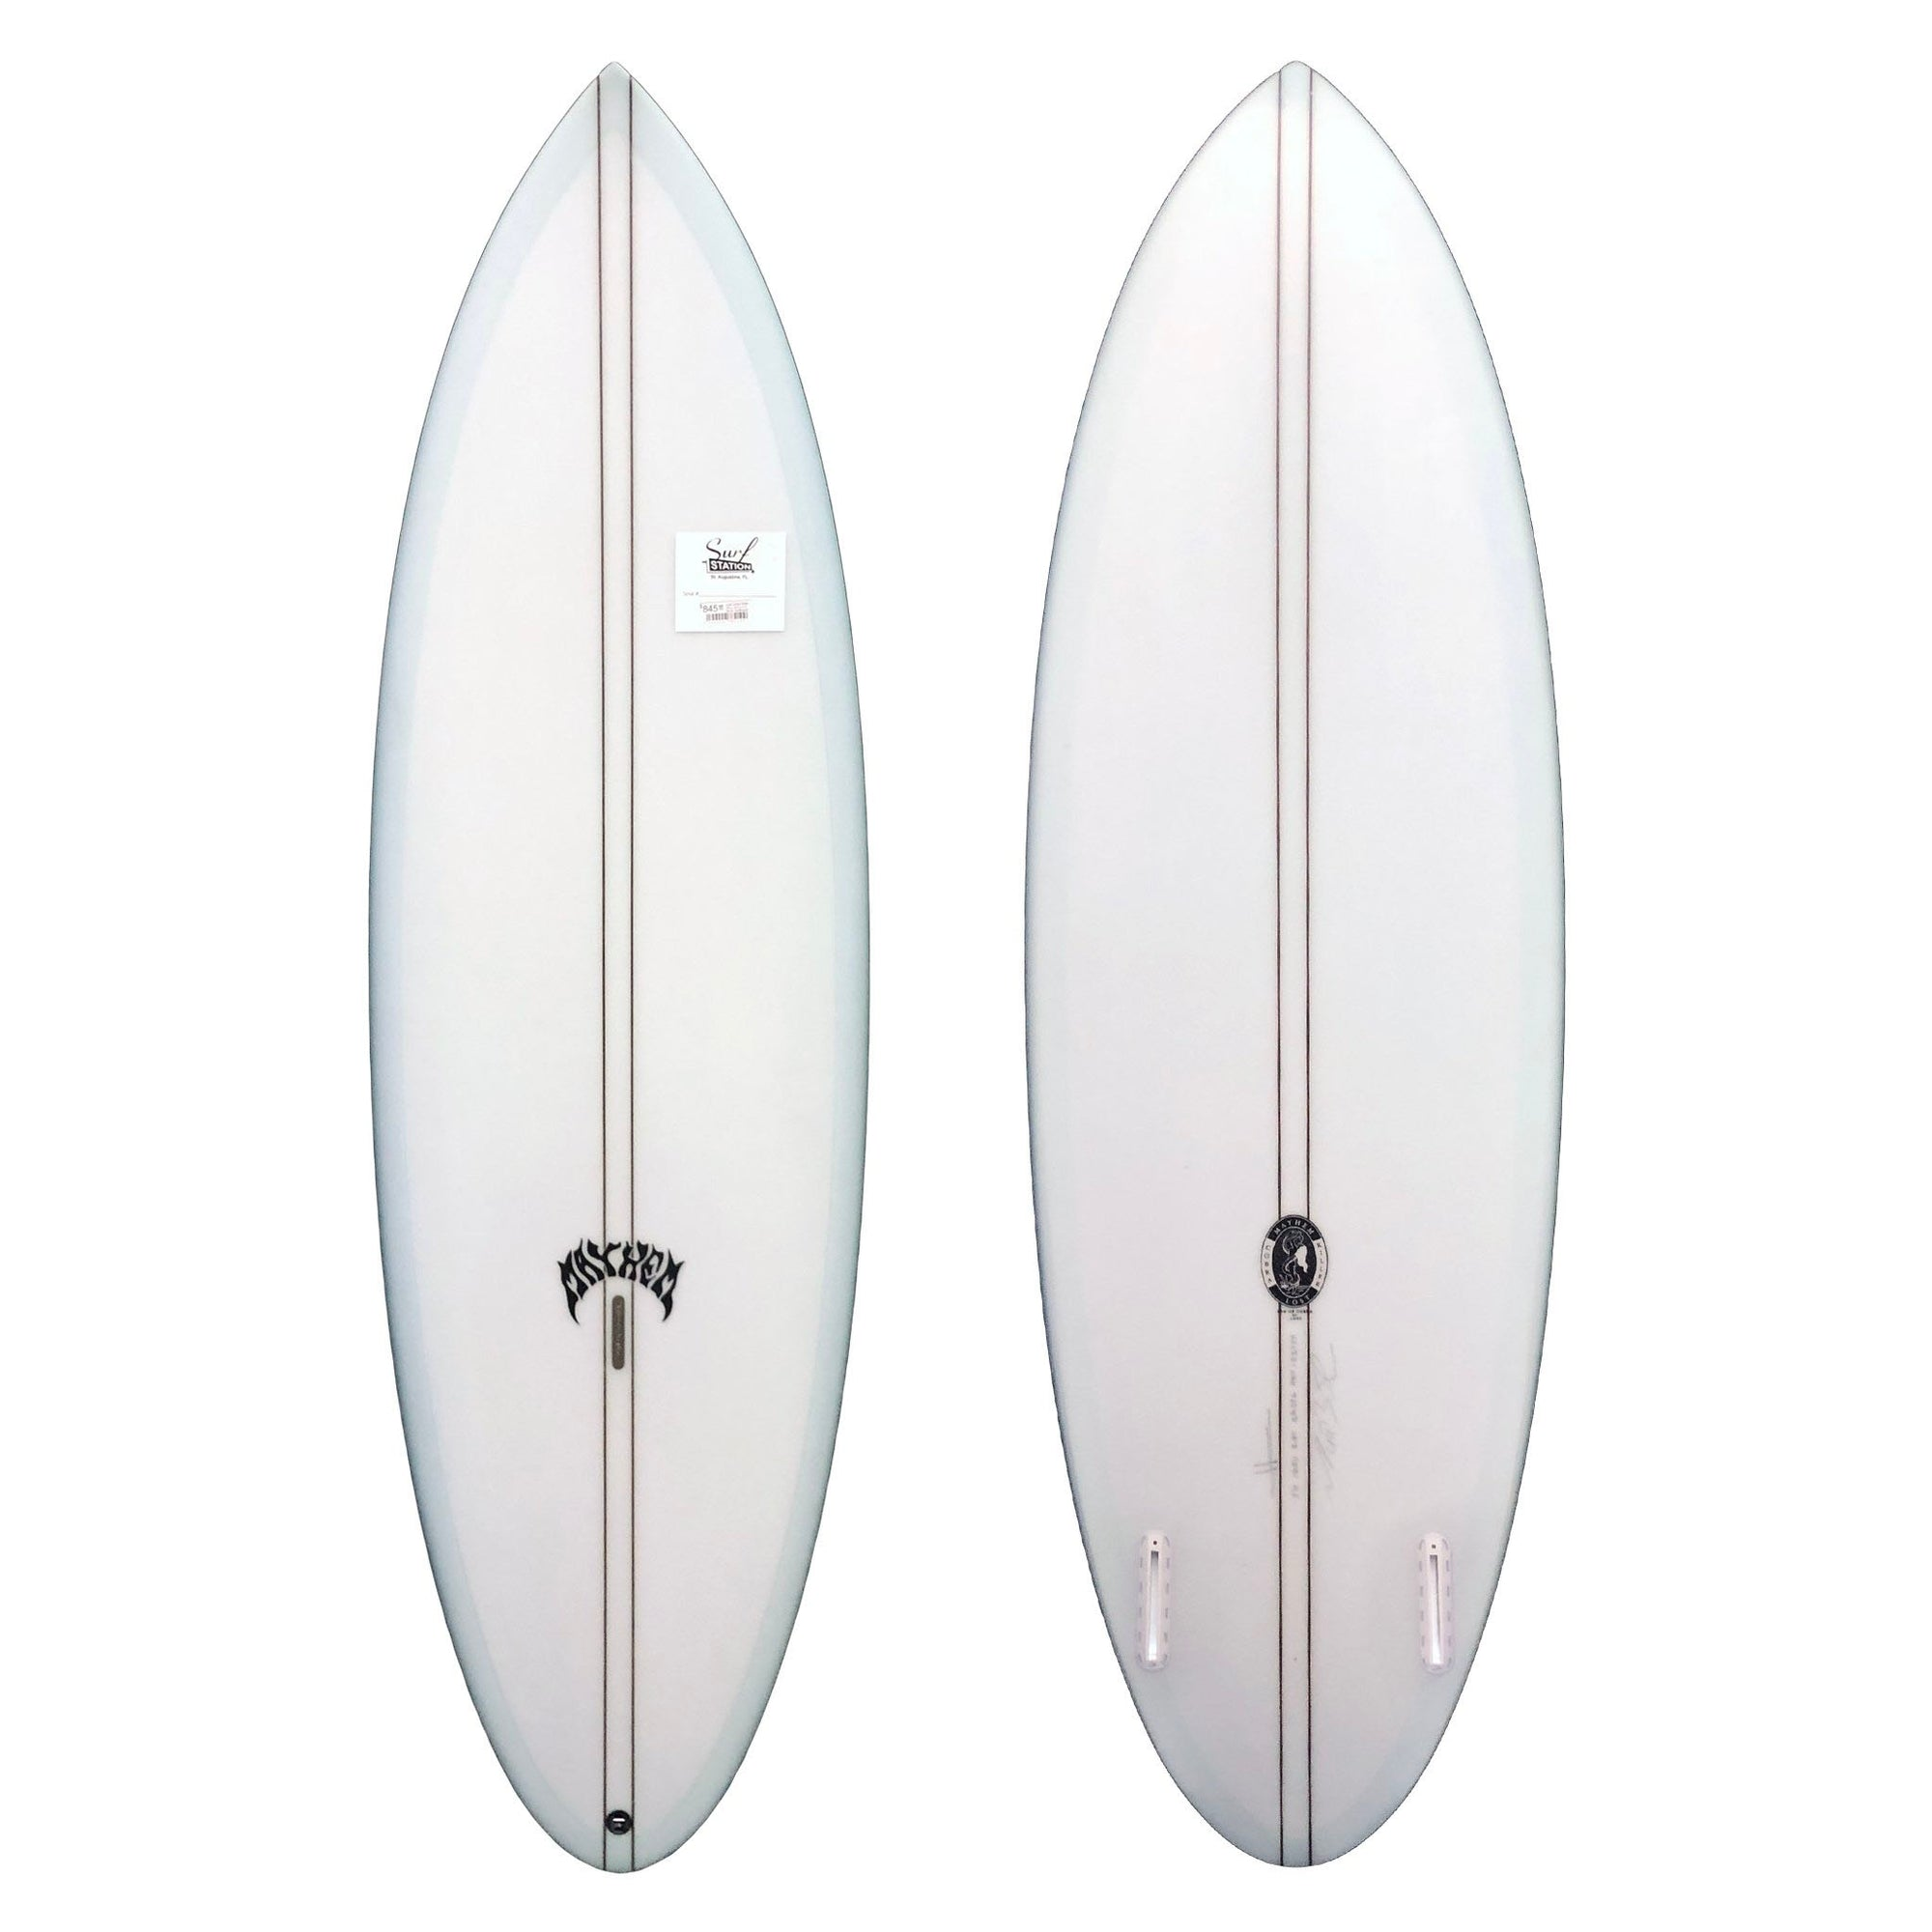 Lost Cobra Killer Surfboard